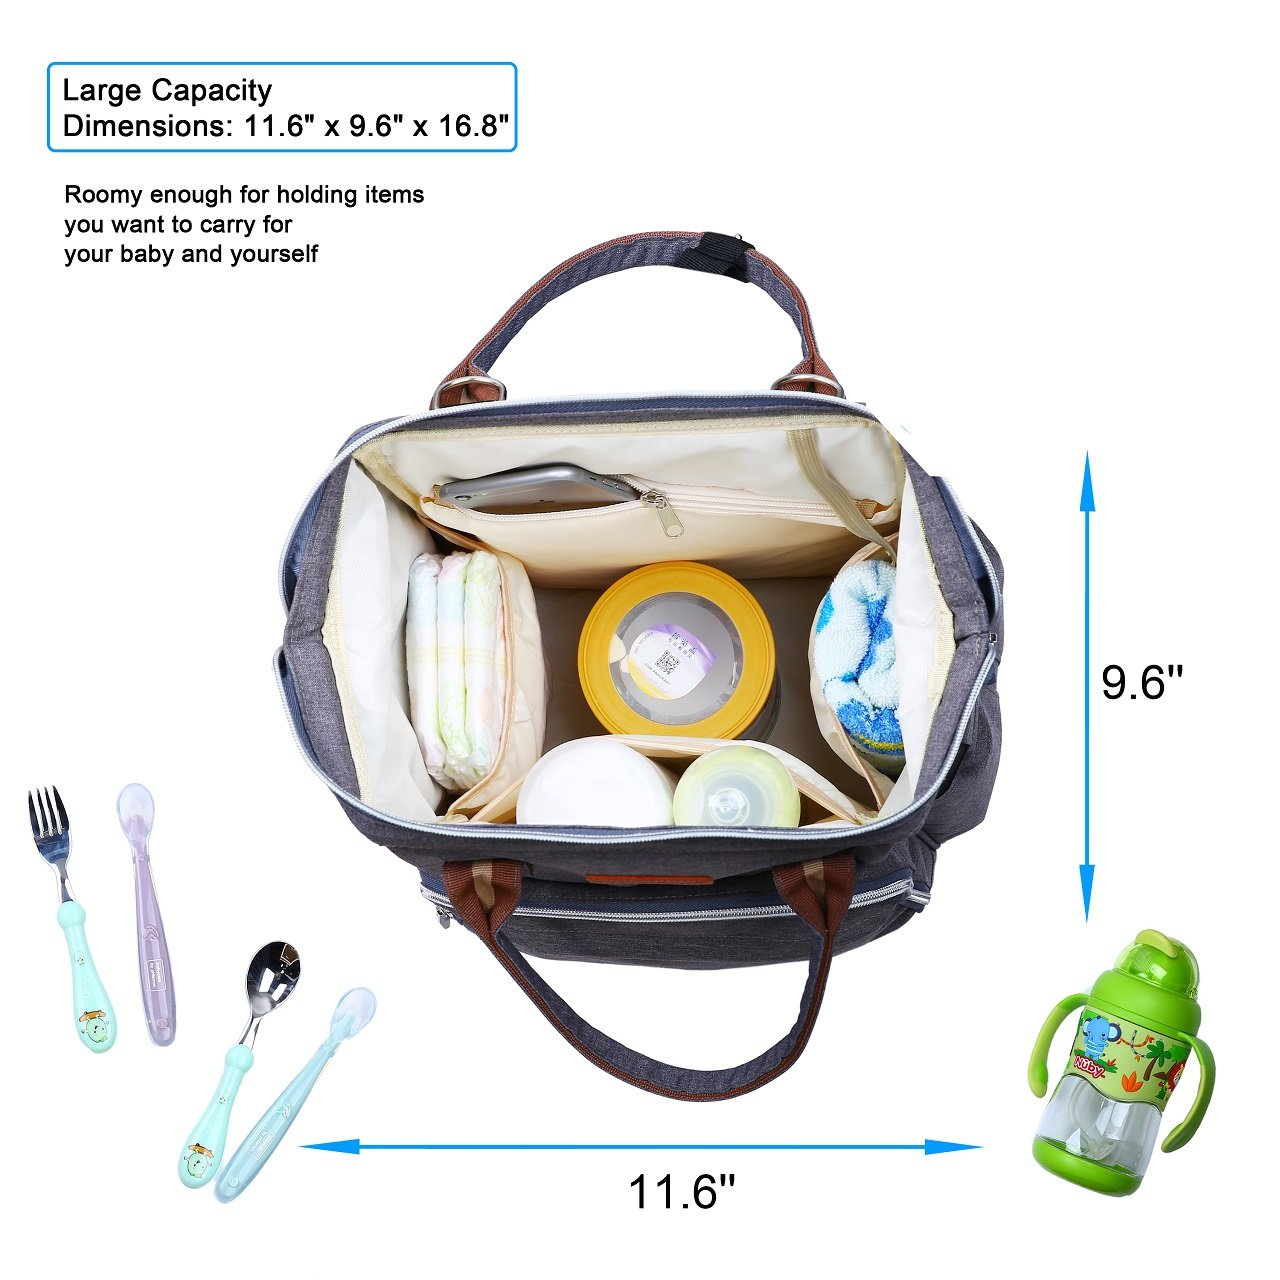 Large Capacity Aipper Diaper Bag Backpack,Multi-Function Travel Back Pack Maternity Baby Nappy Changing Bags Gray Waterproof and Stylish